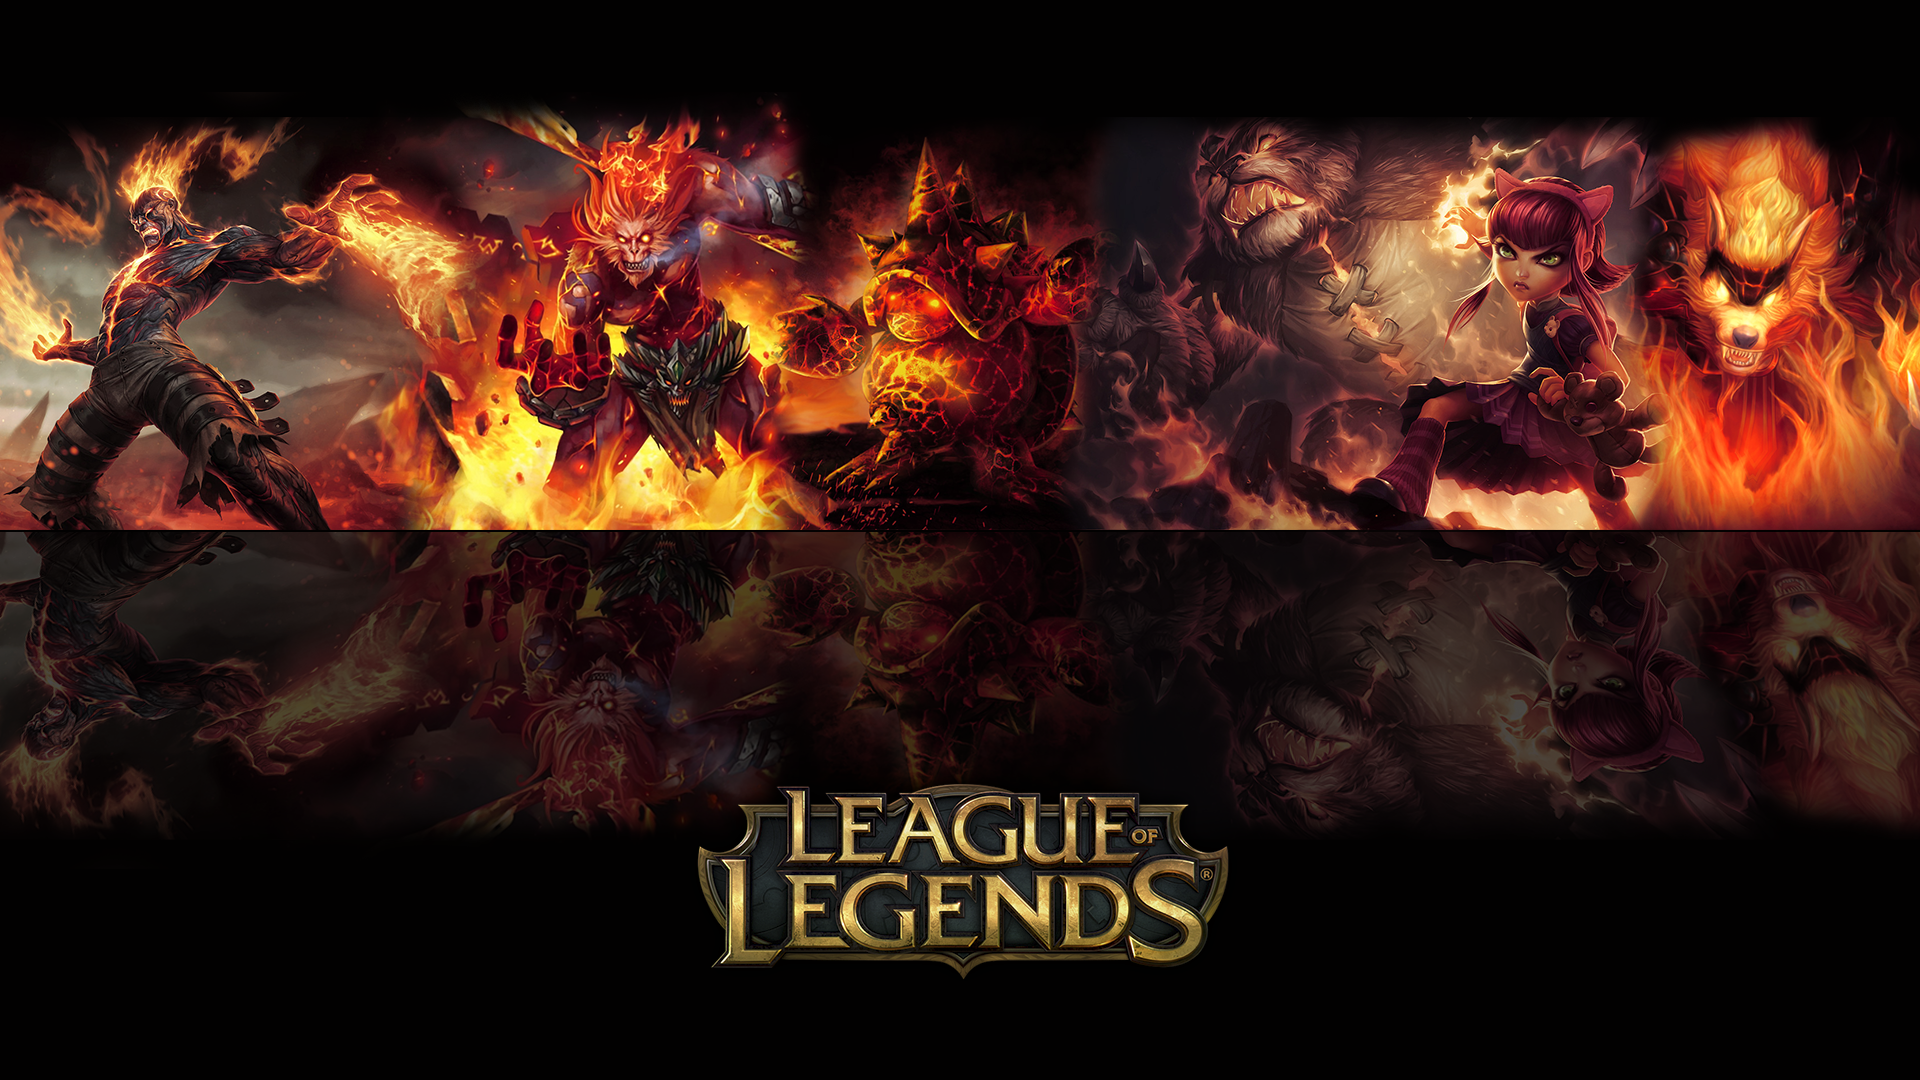 League Of Legends Fire Wallpaper By ViciousBlue